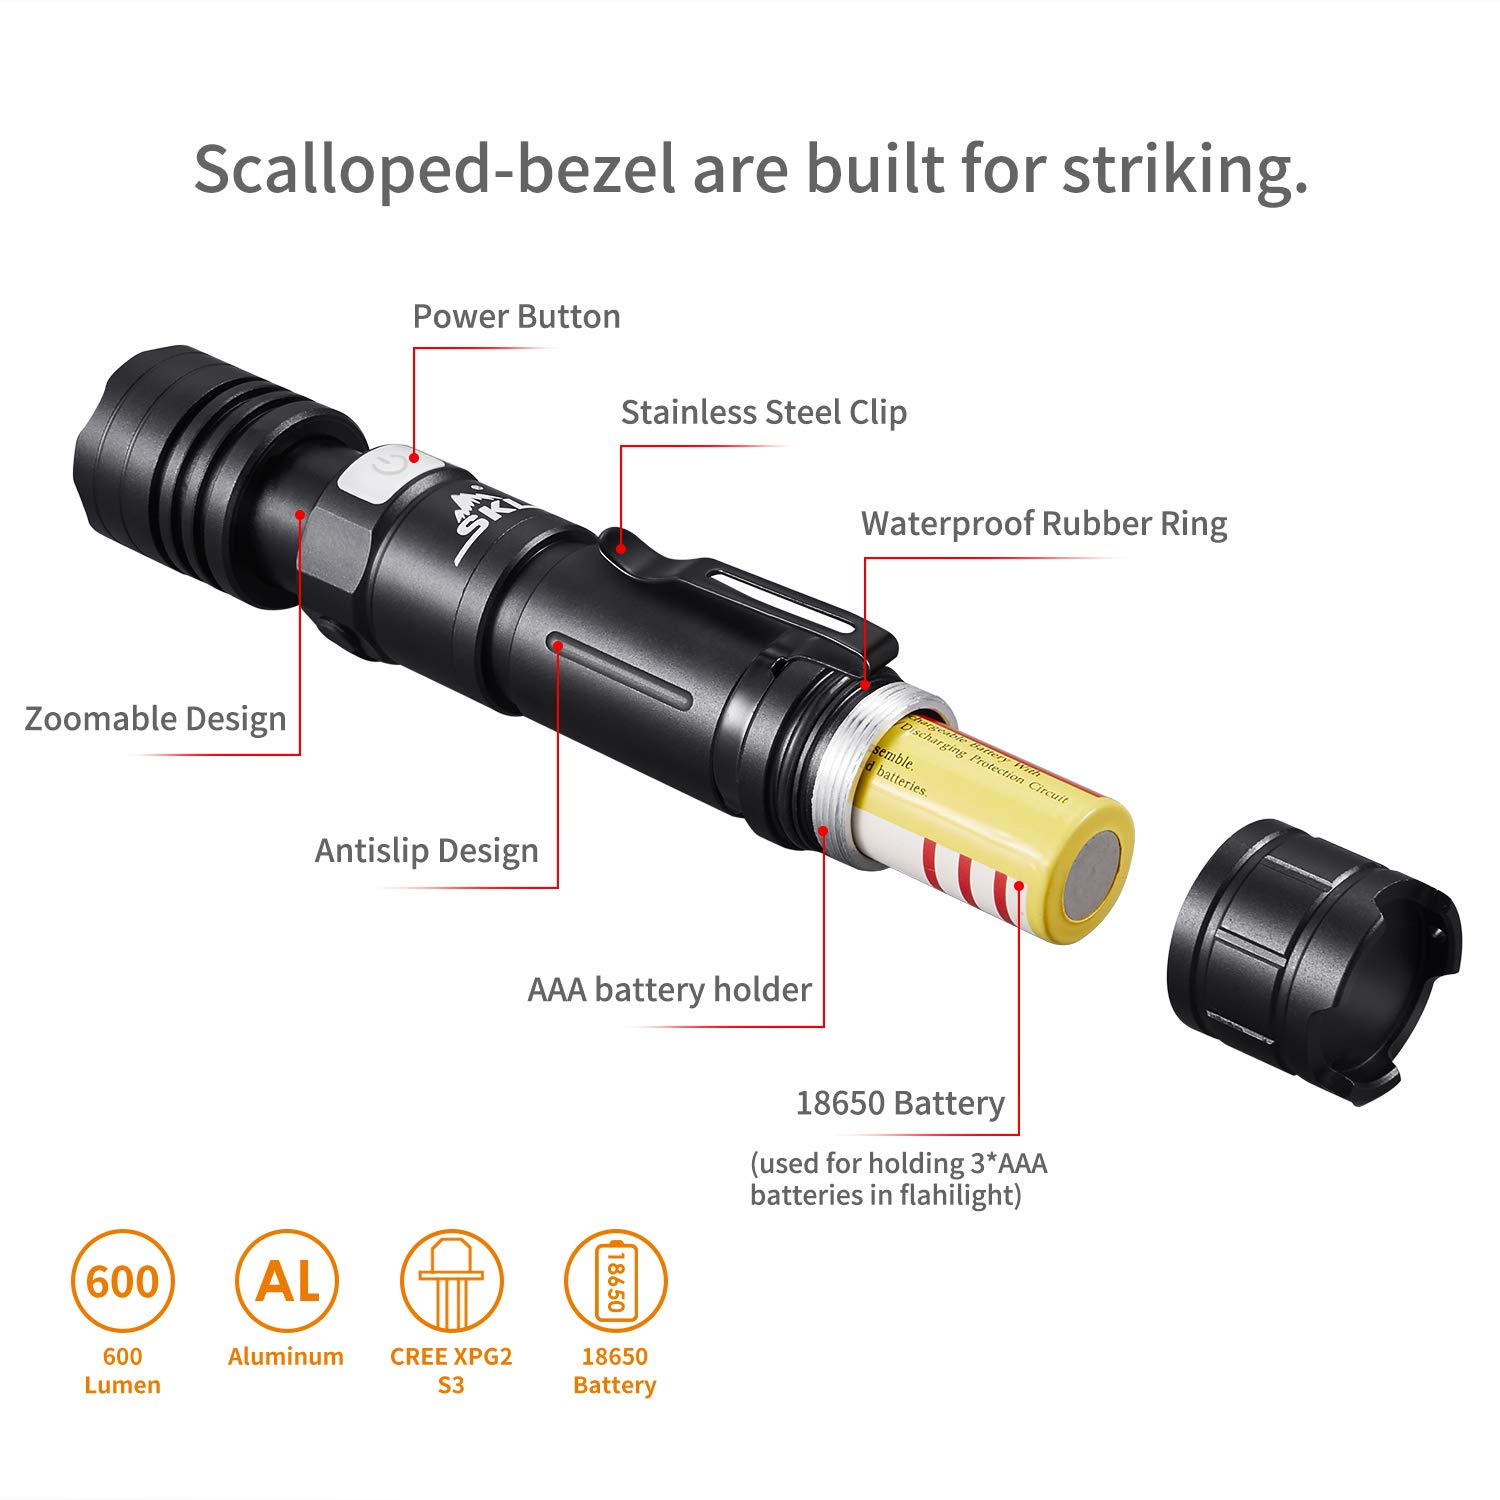 Water Resistant Flashlights High Lumens Tactical Flash light for Camping Hiking Running Portable Bright Handheld LED Flashlight with Adjustable Focus and 5 Light Modes